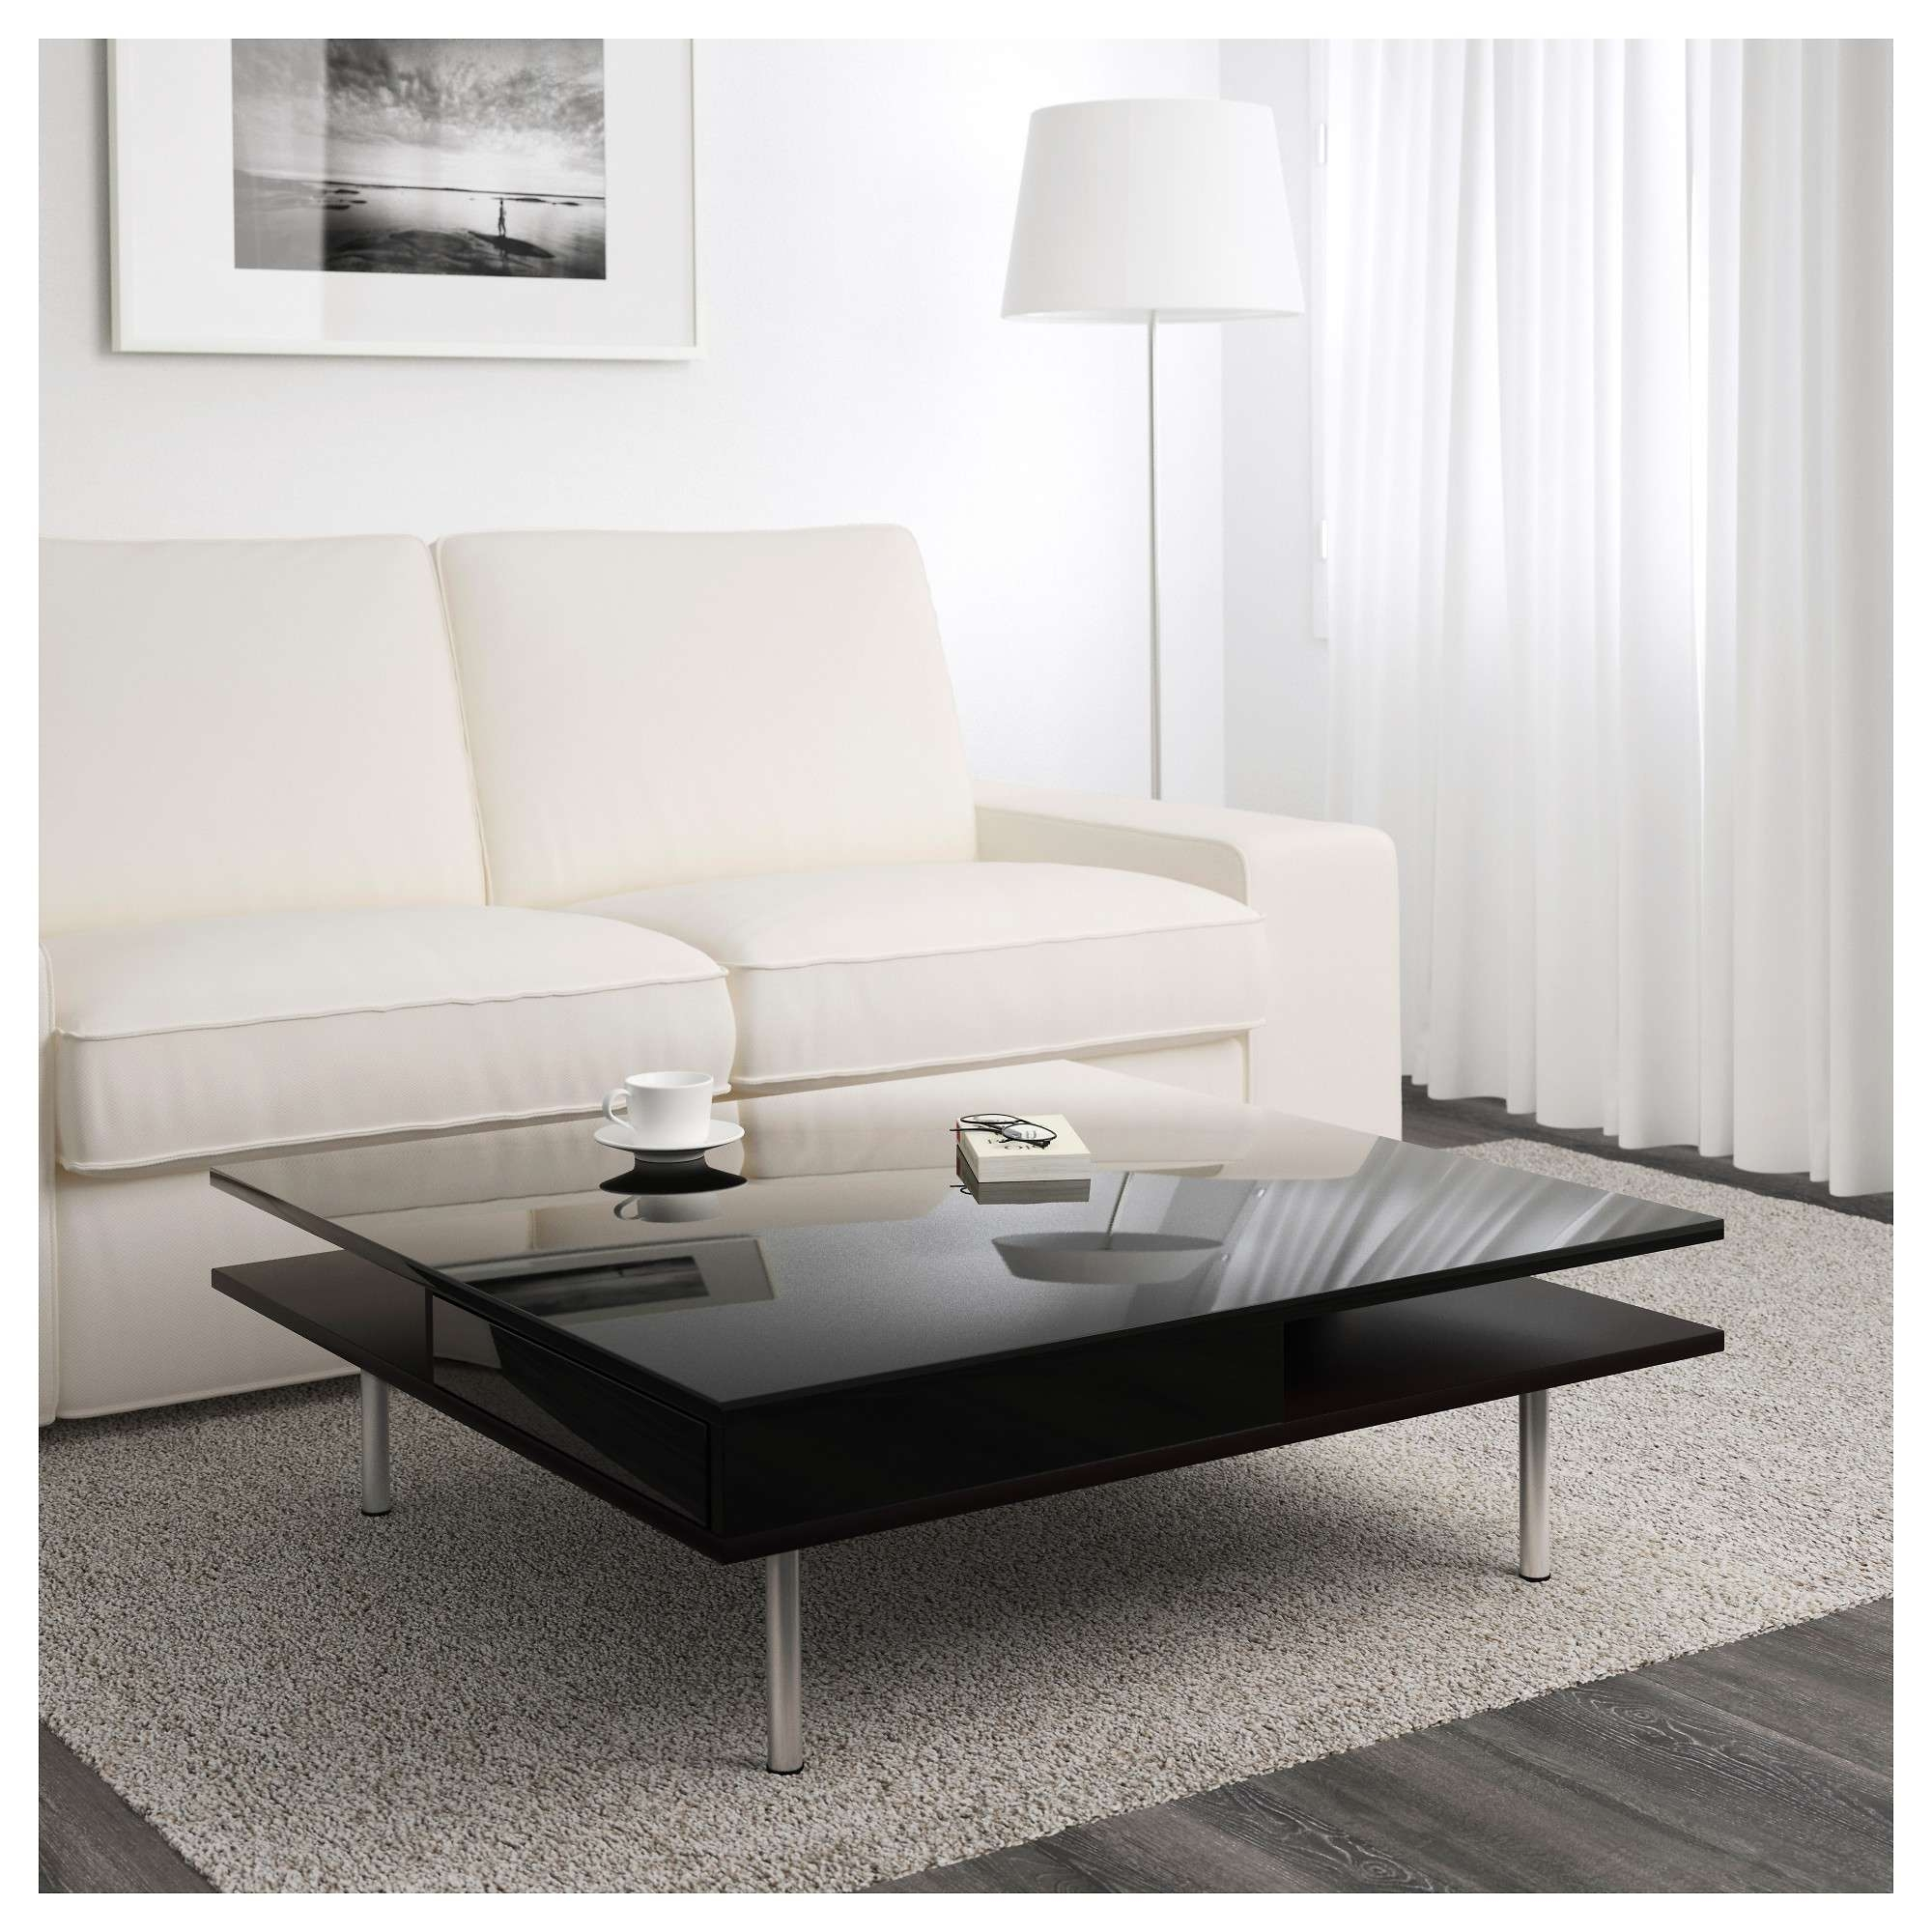 Tofteryd Coffee Table – High Gloss Black – Ikea Intended For Fashionable High Gloss Coffee Tables (View 17 of 20)